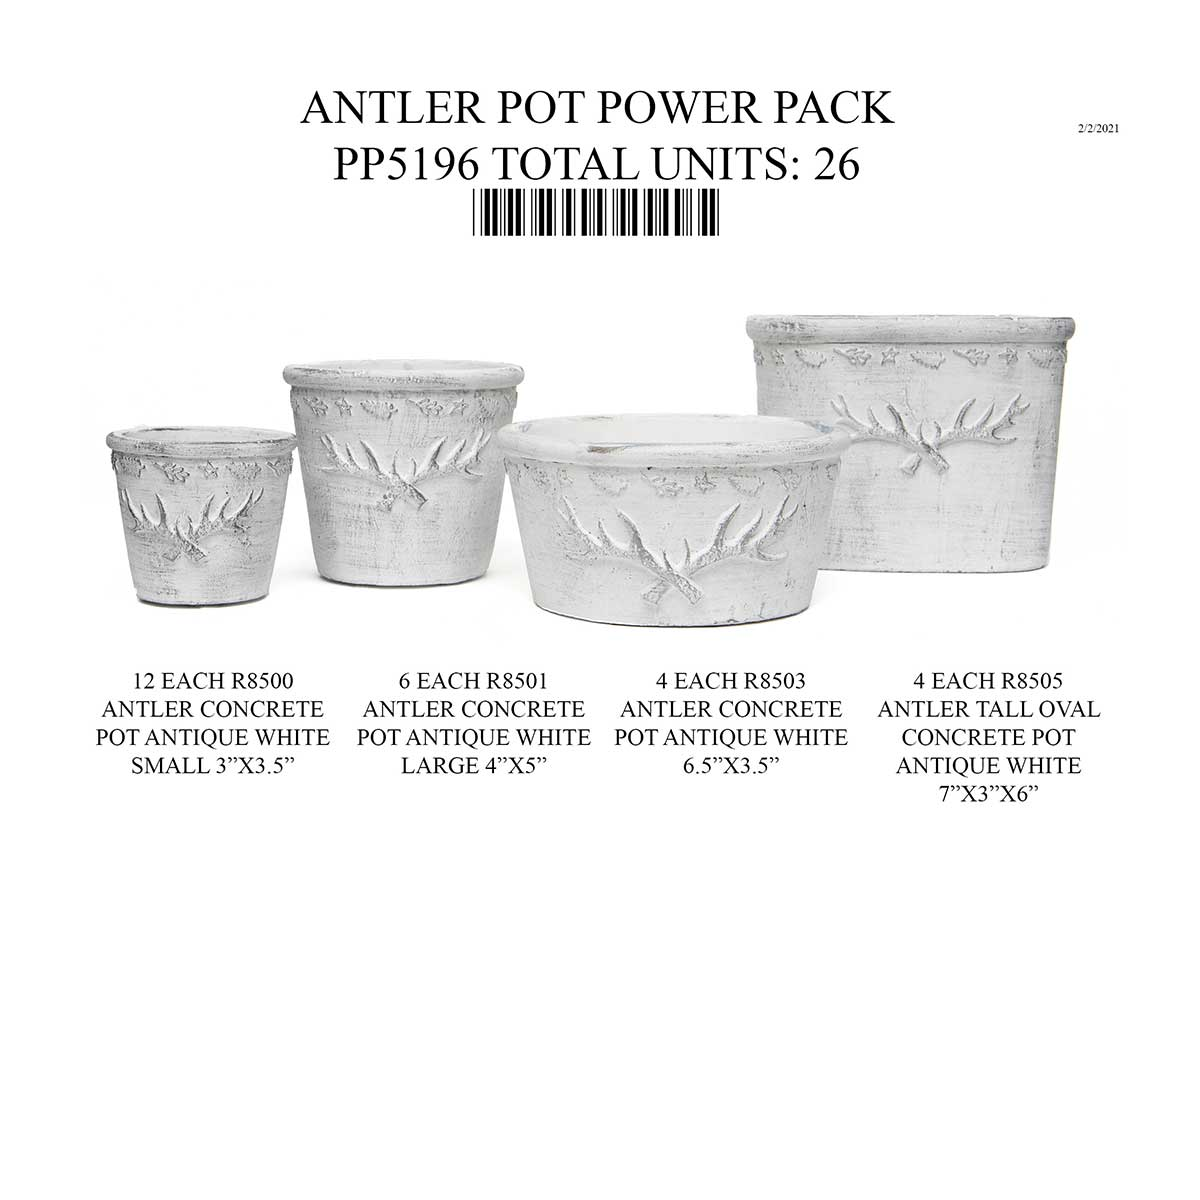 ANTLER PORT WITH LEAF EMBOSSED EDGE DESIGN CONCRETE POT 26 UNITS